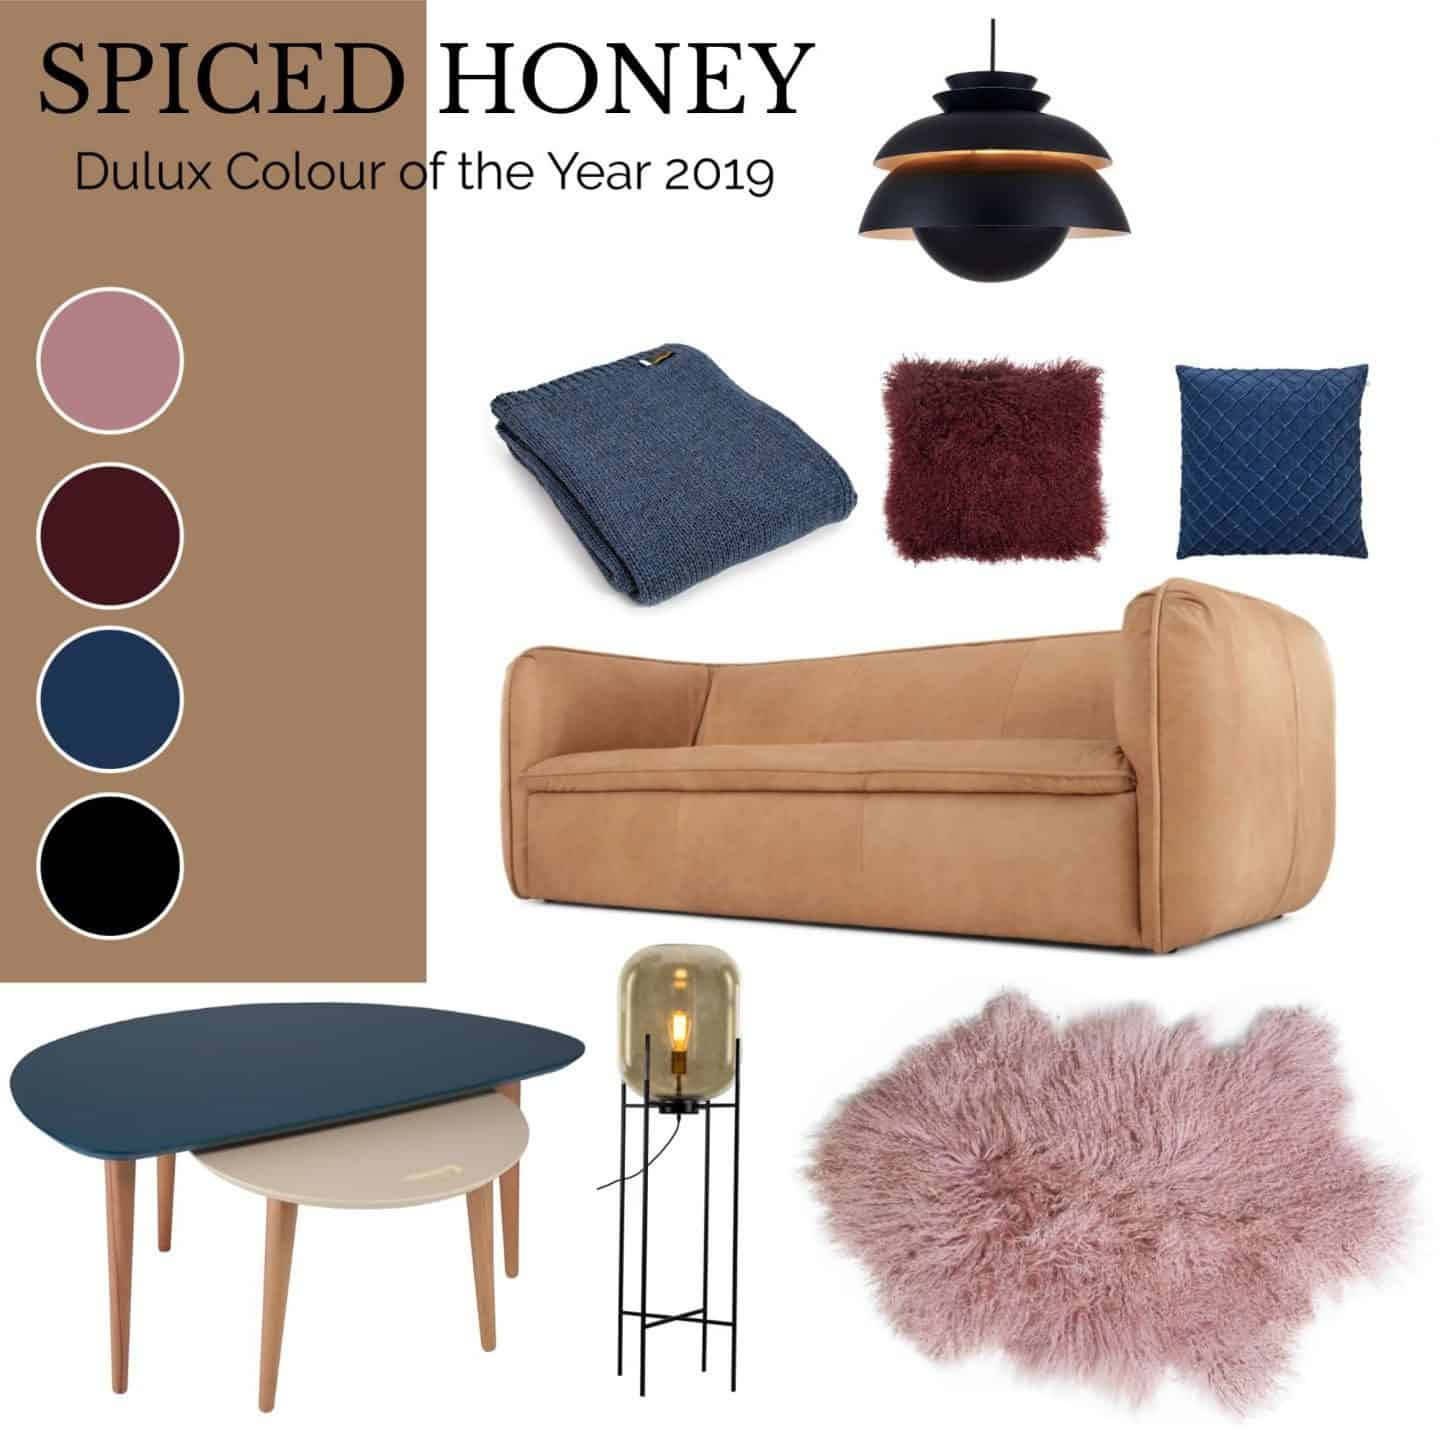 A living room Moodboard using Dulux Spiced Honey as the base colour